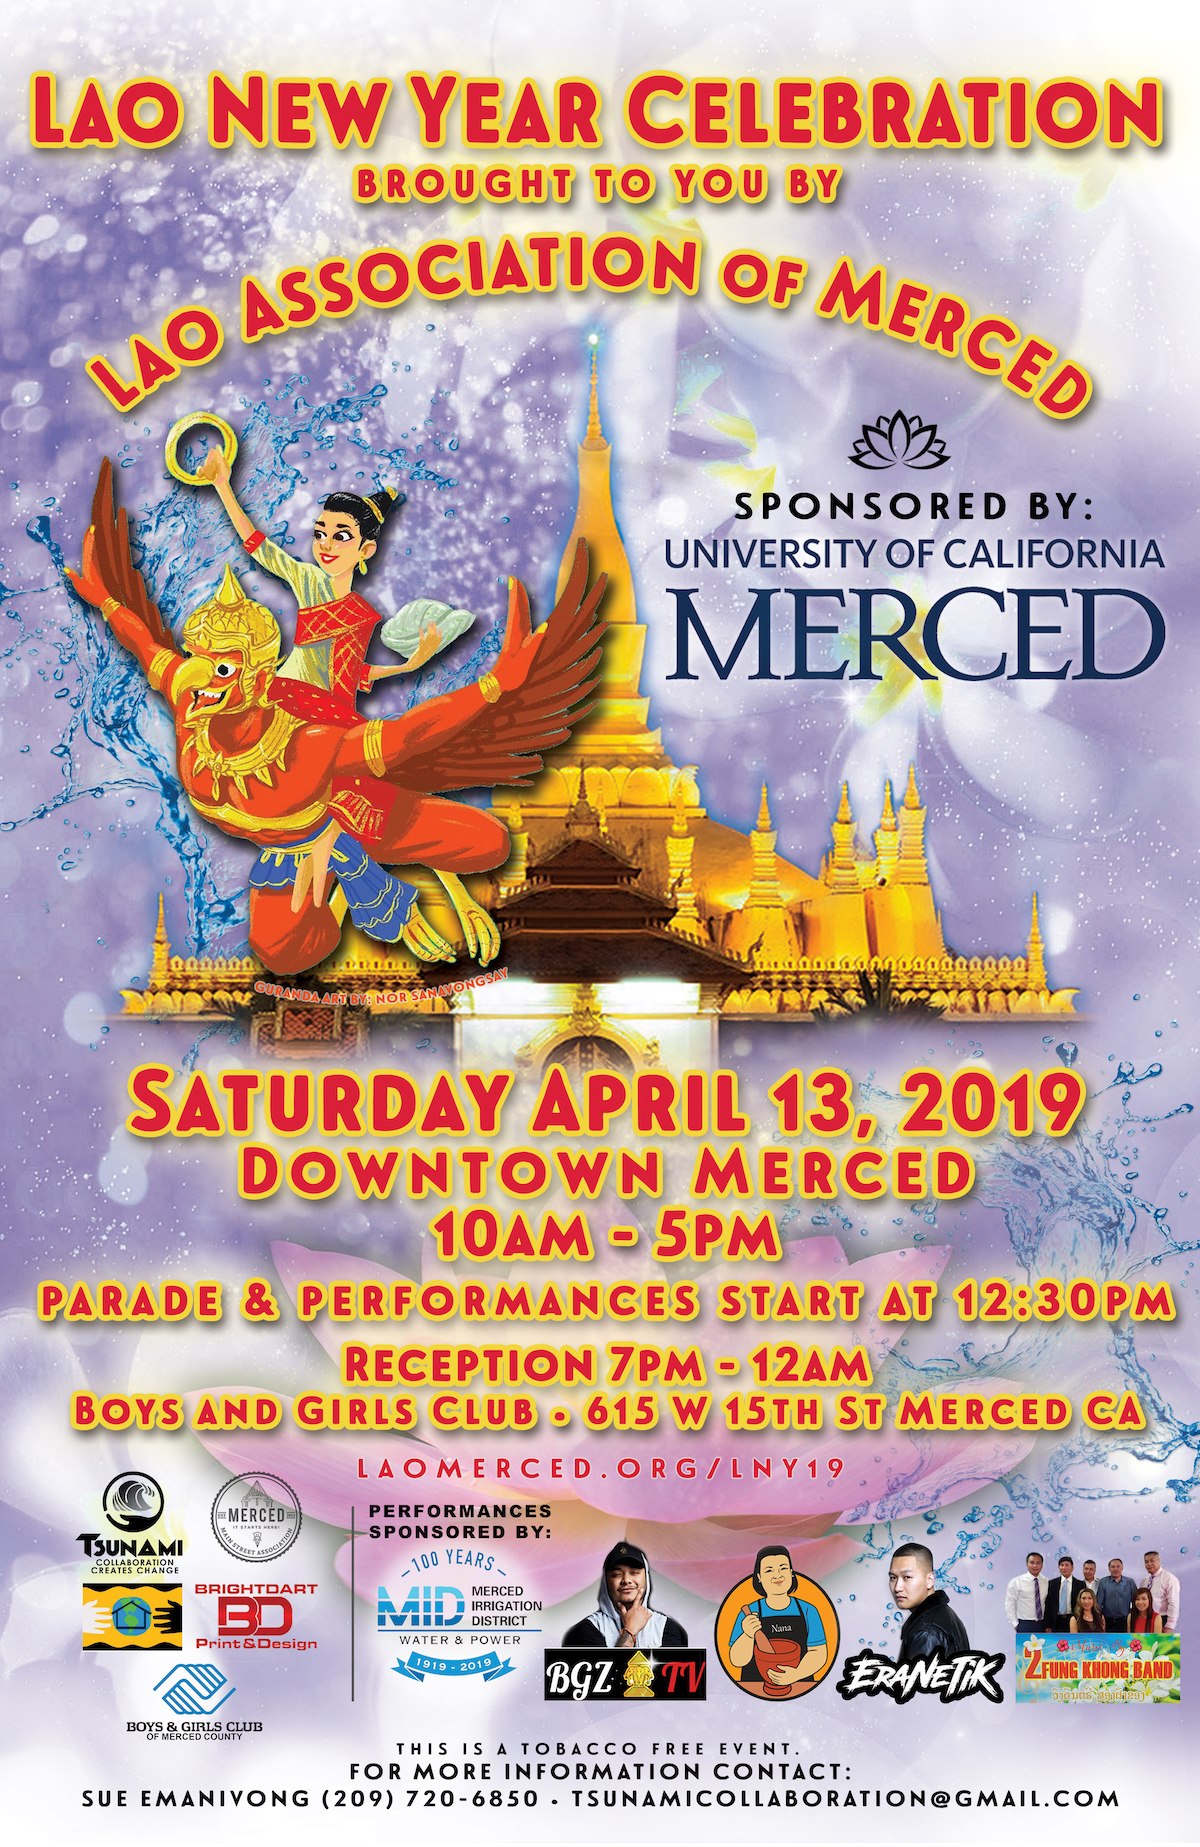 Poster for Downtown Merced 2019 Lao New Year Celebration